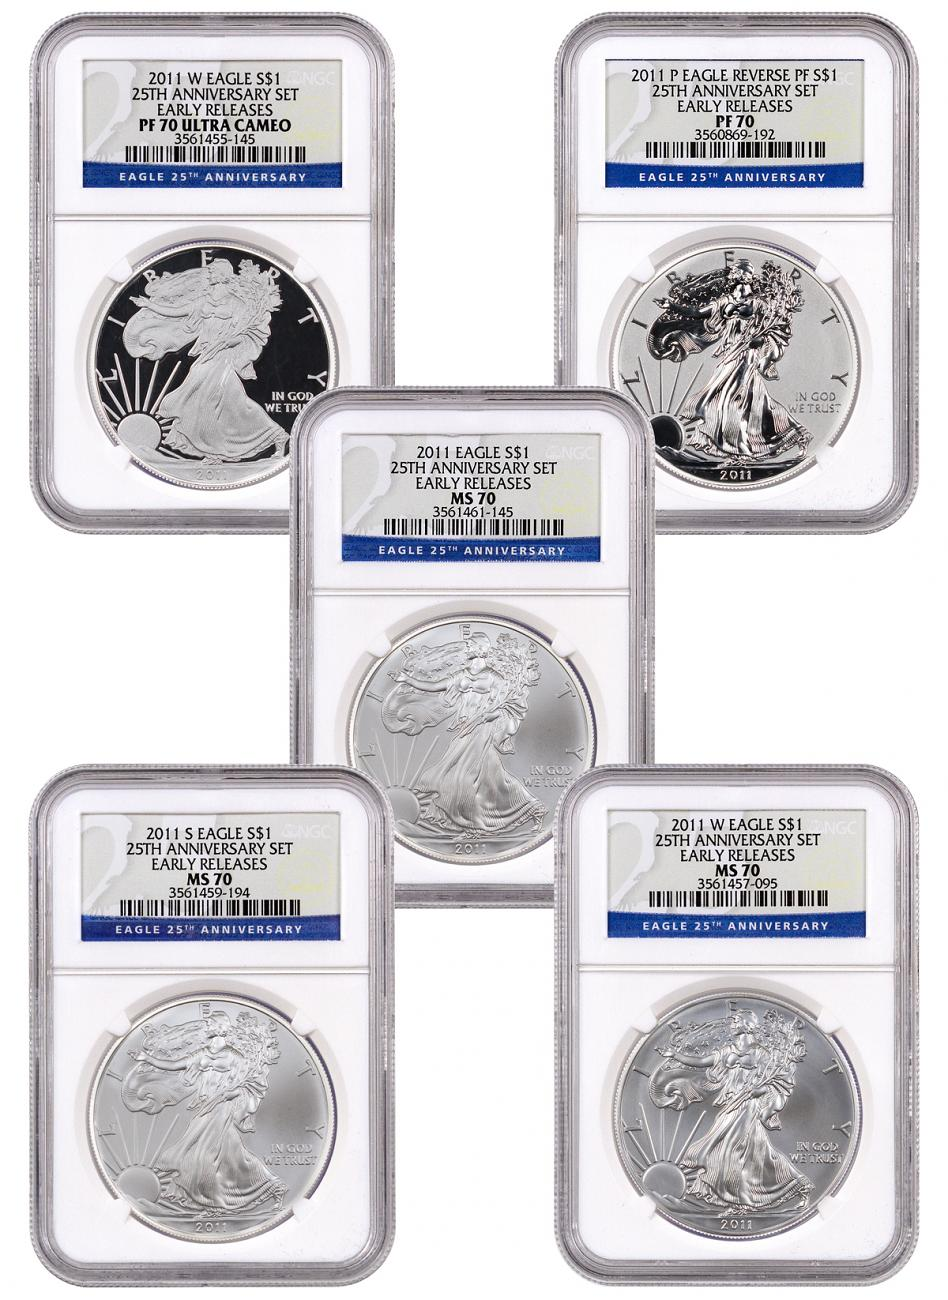 5-Coin Set - 2011 Silver Eagle 25th Anniversary Set NGC PF70 + MS70 ER